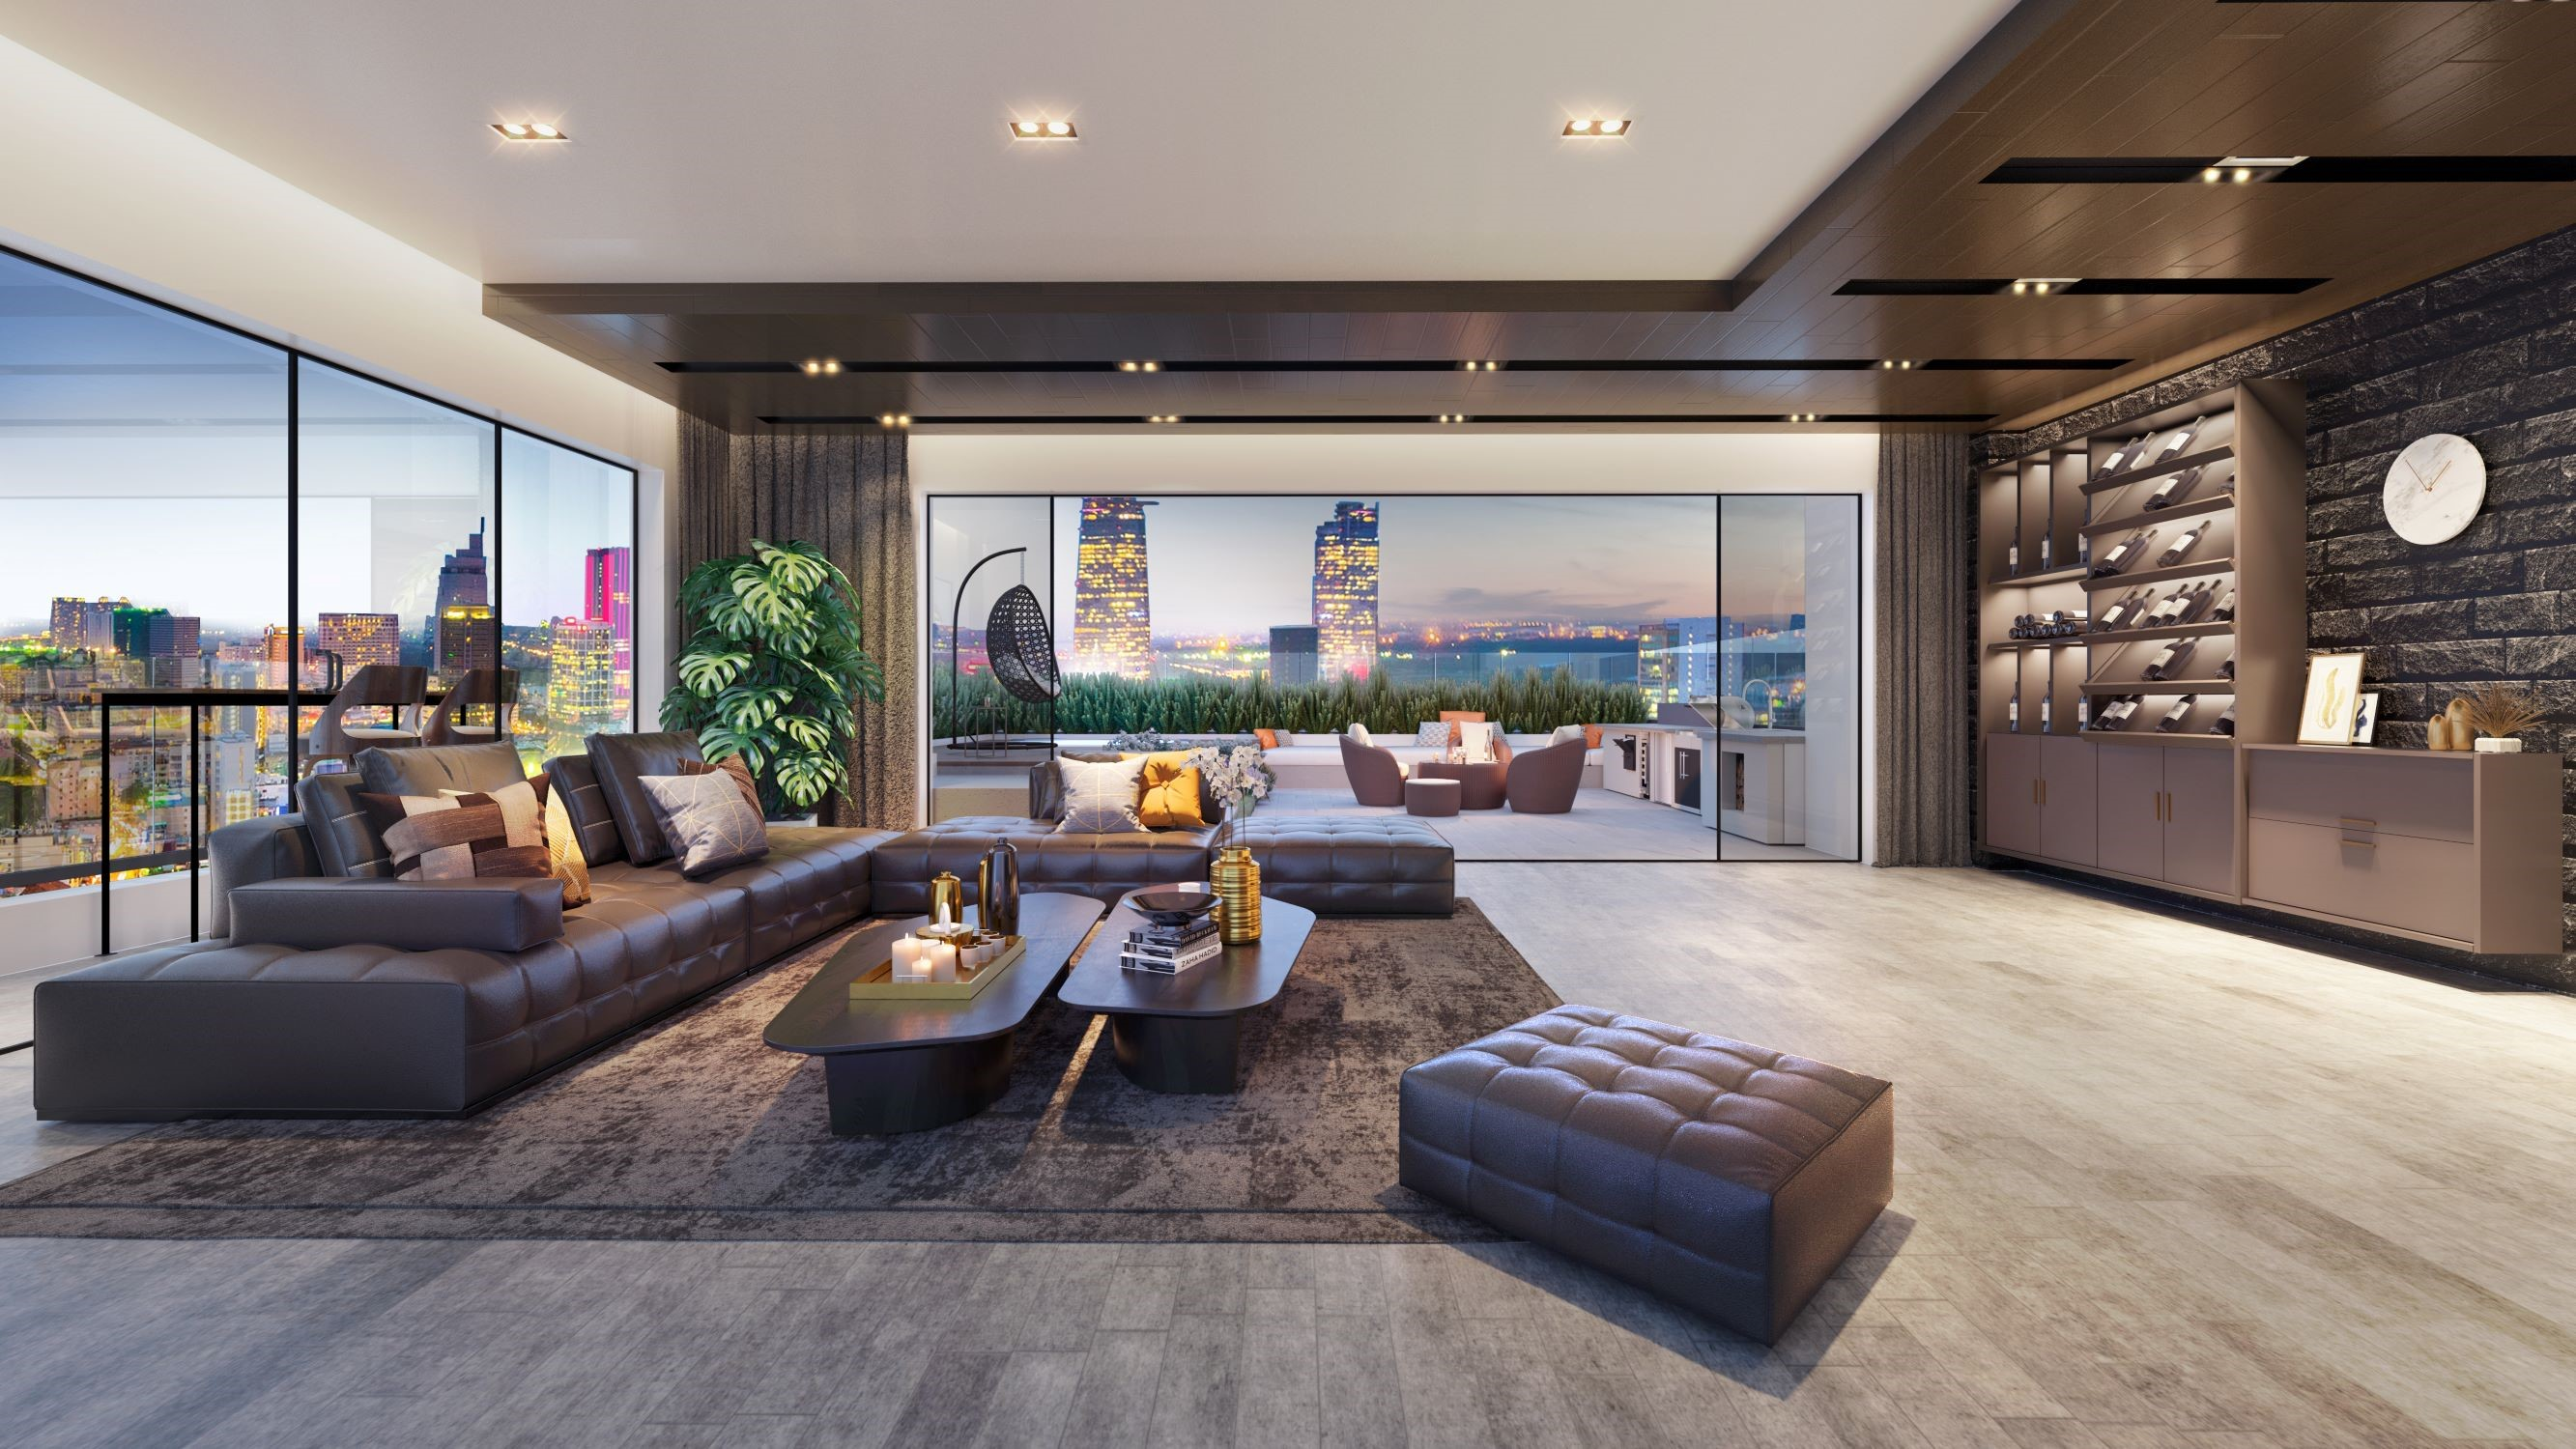 The Grand Manhattan is expected to attract many renters thanks to five-star hotel services and amenities available in it.